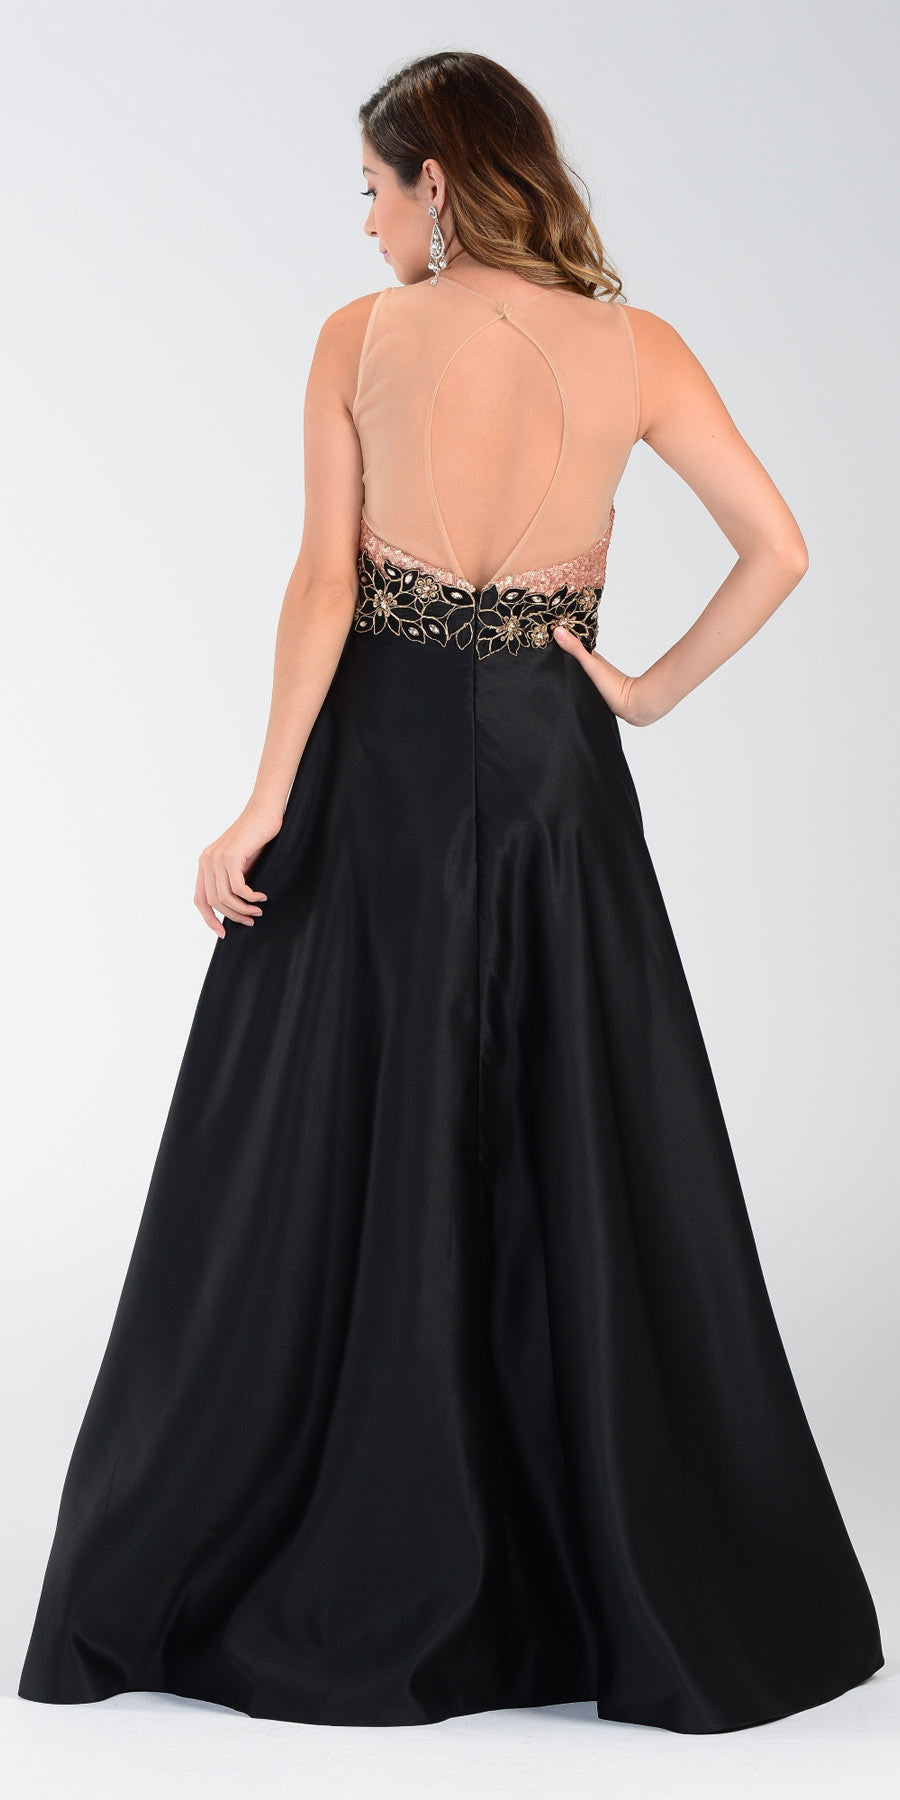 24222fb387f ON SPECIAL LIMITED STOCK - Poly USA 7330 Black Gold Sequin Top Prom Dress  Long Satin A Line